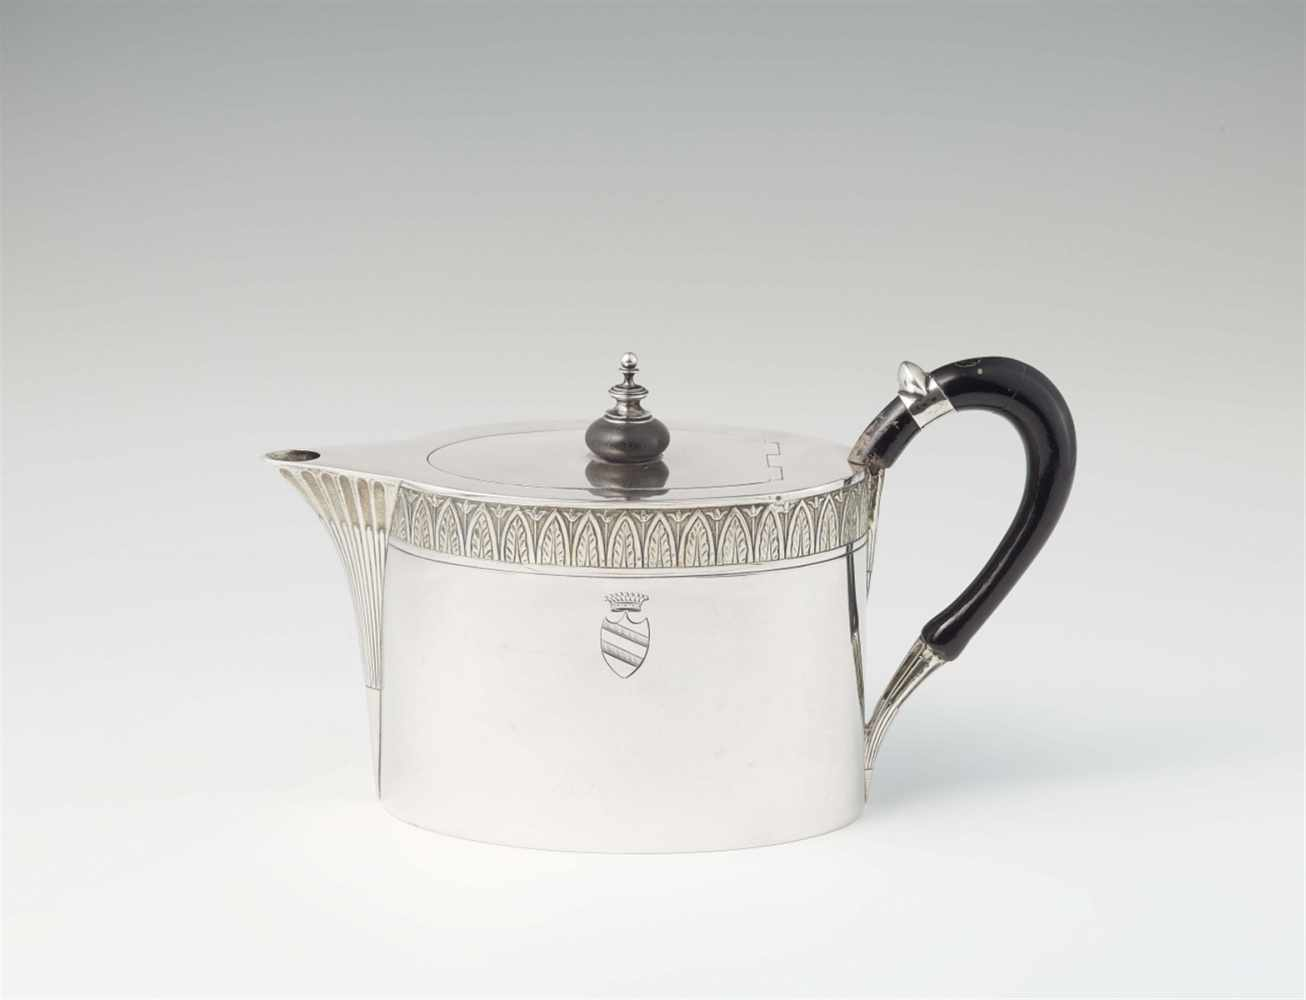 Lot 349 - A Dresden silver teapotOval interior gilt vessel with sunken hinged lid. Engraved to the display